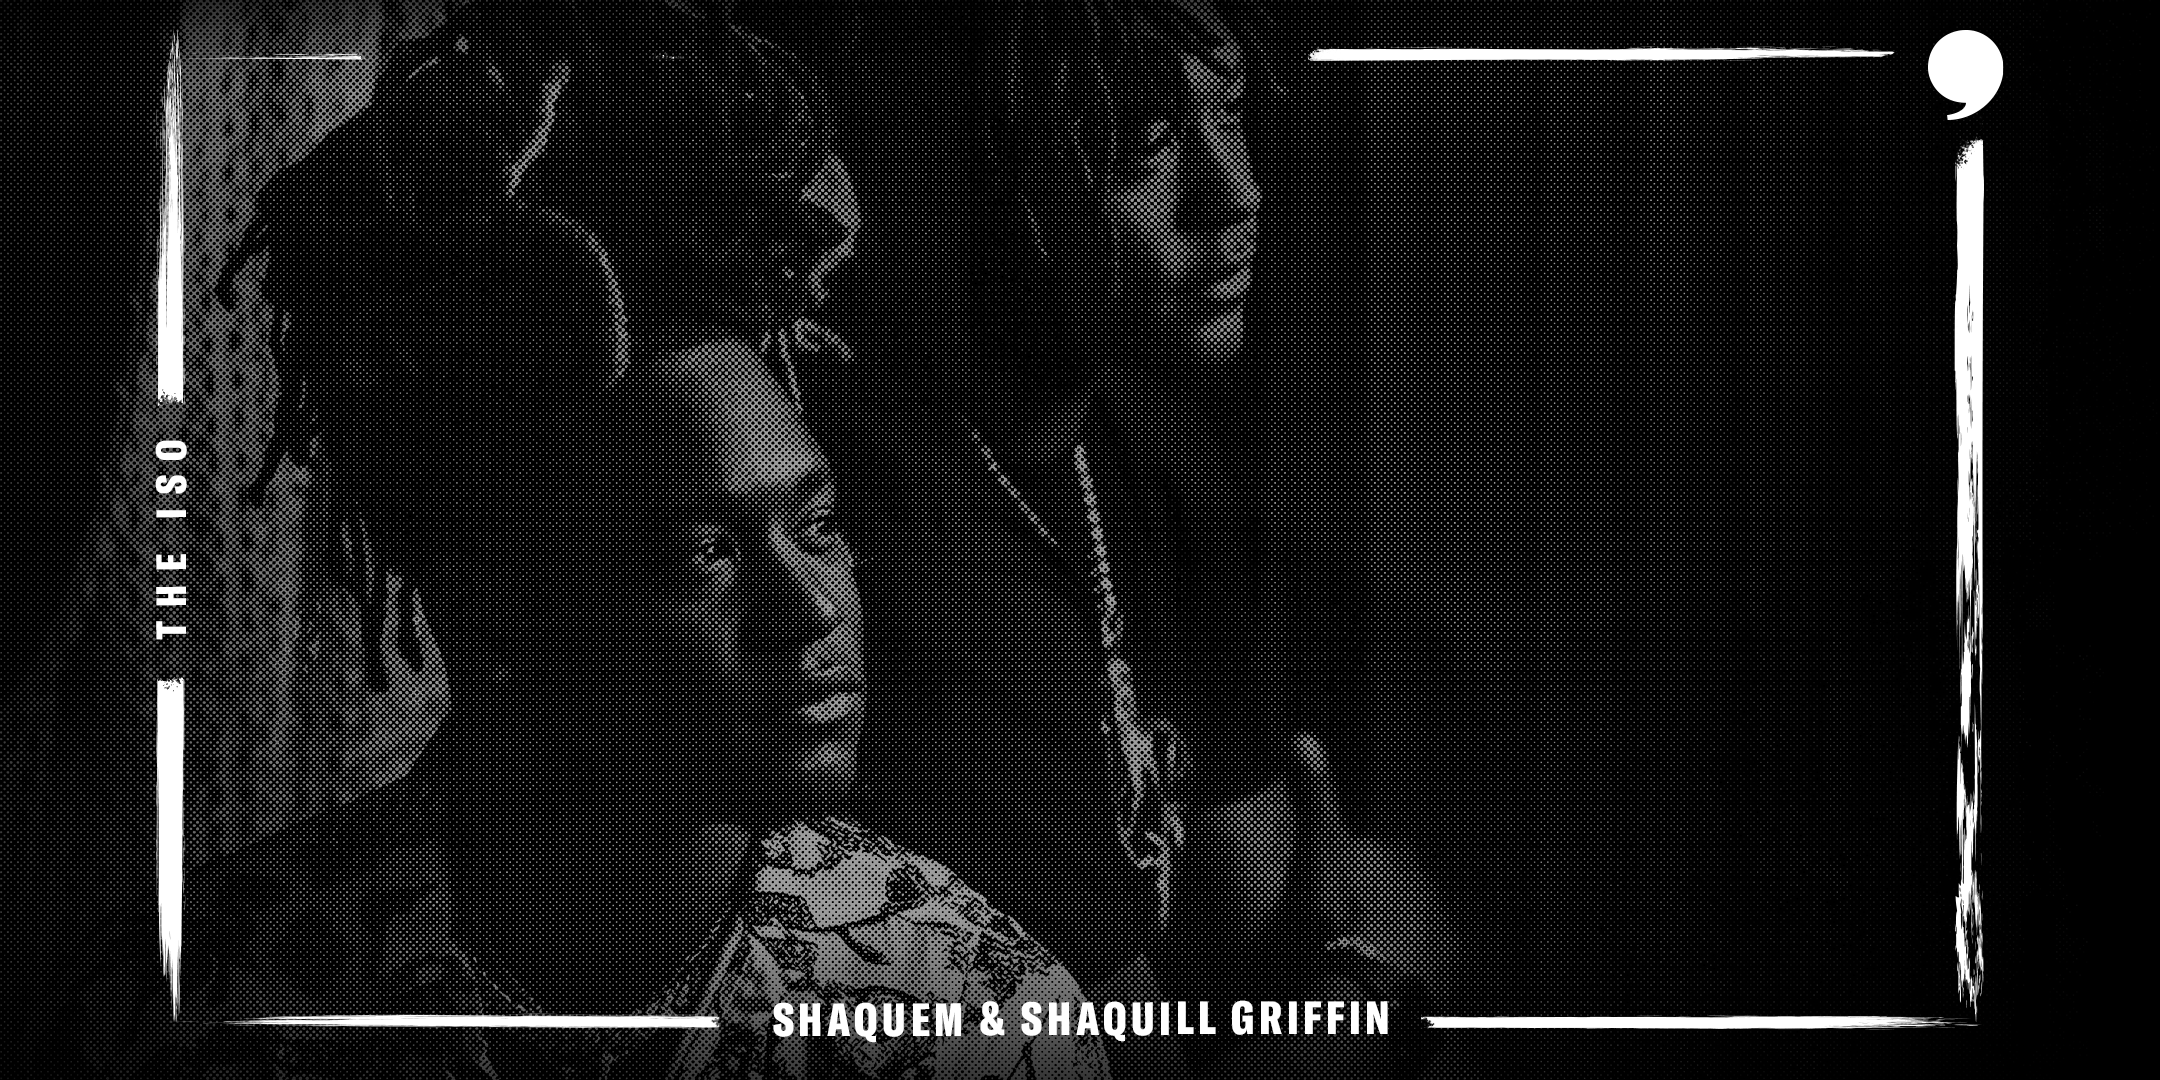 The Iso: Shaquem & Shaquill Griffin